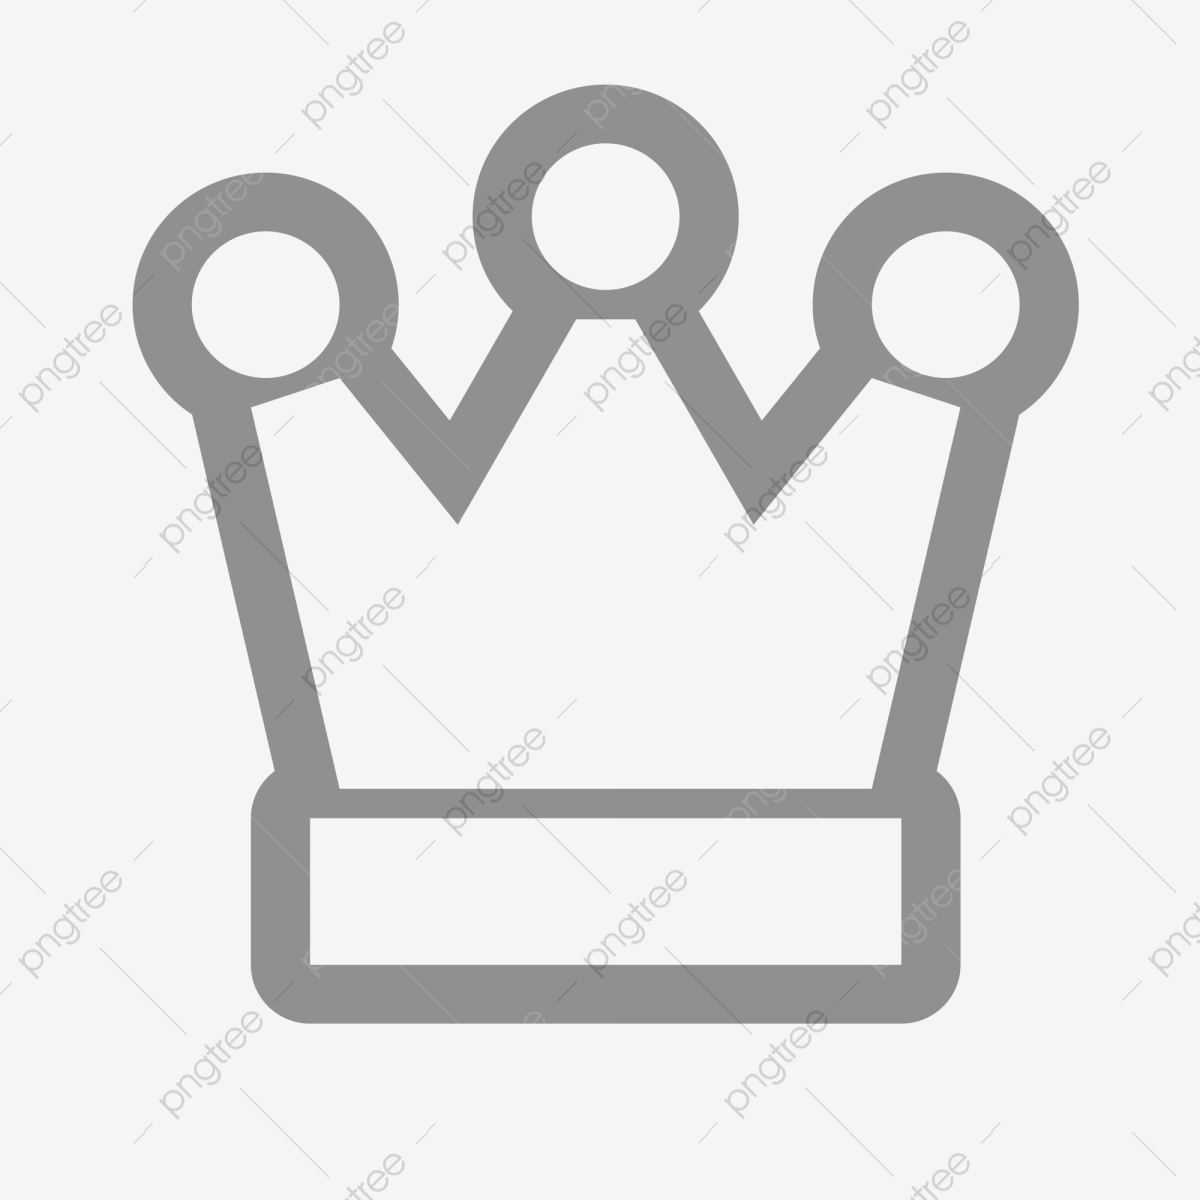 Cartoon Crown Png Images Vector And Psd Files Free Download On Pngtree Cartoon black and white crown. https pngtree com freepng cartoon crown png download 4441376 html